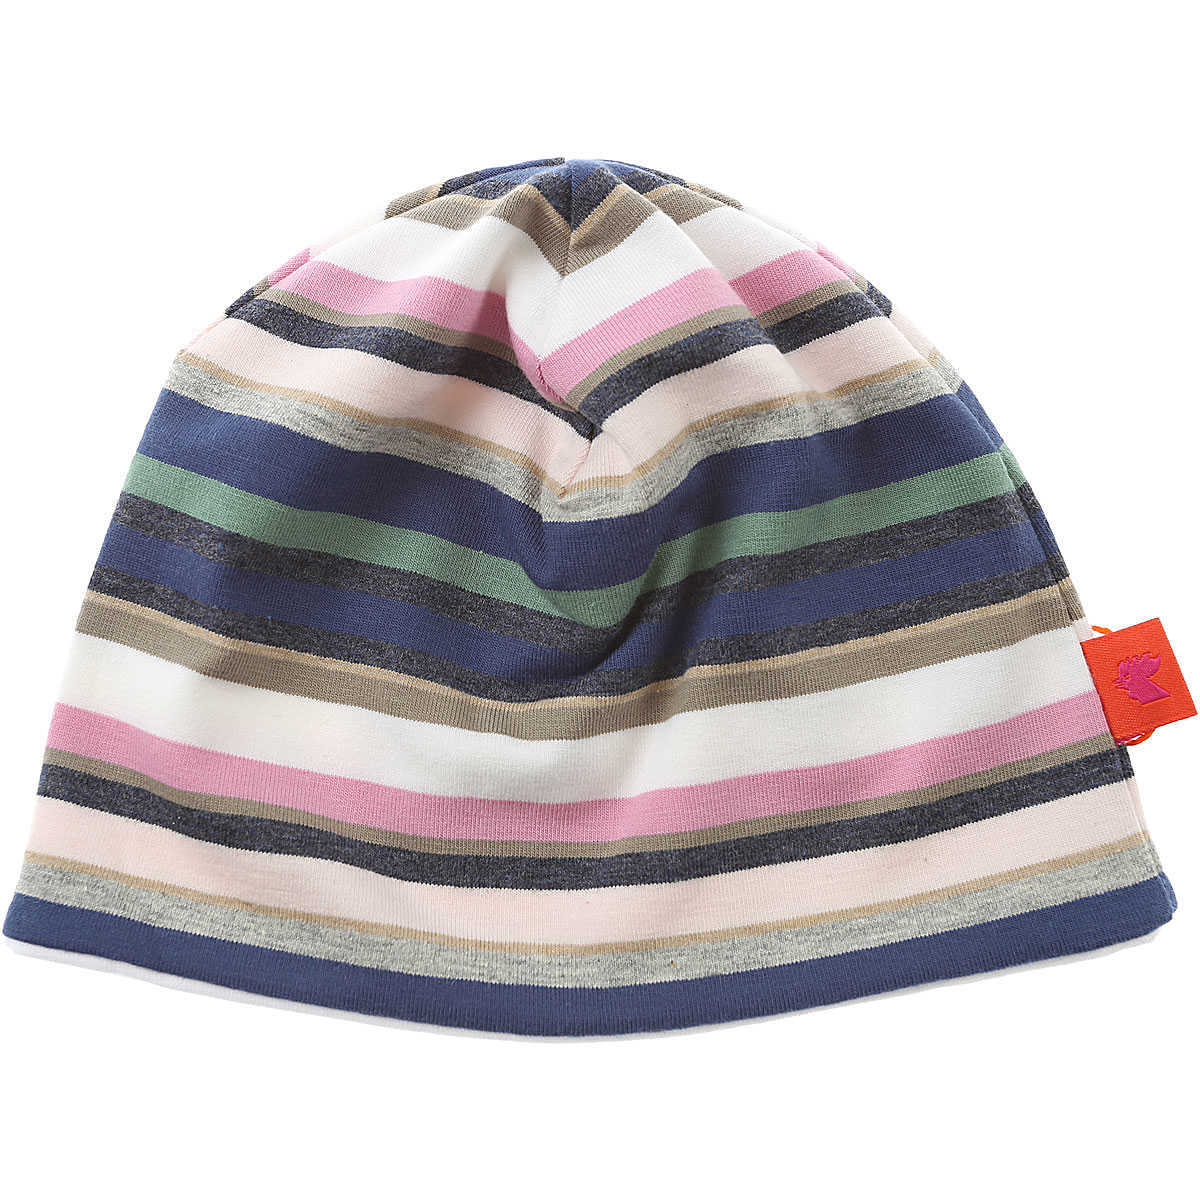 Gallo Baby Hats for Girls On Sale in Outlet Pink UK - GOOFASH - Womens HATS